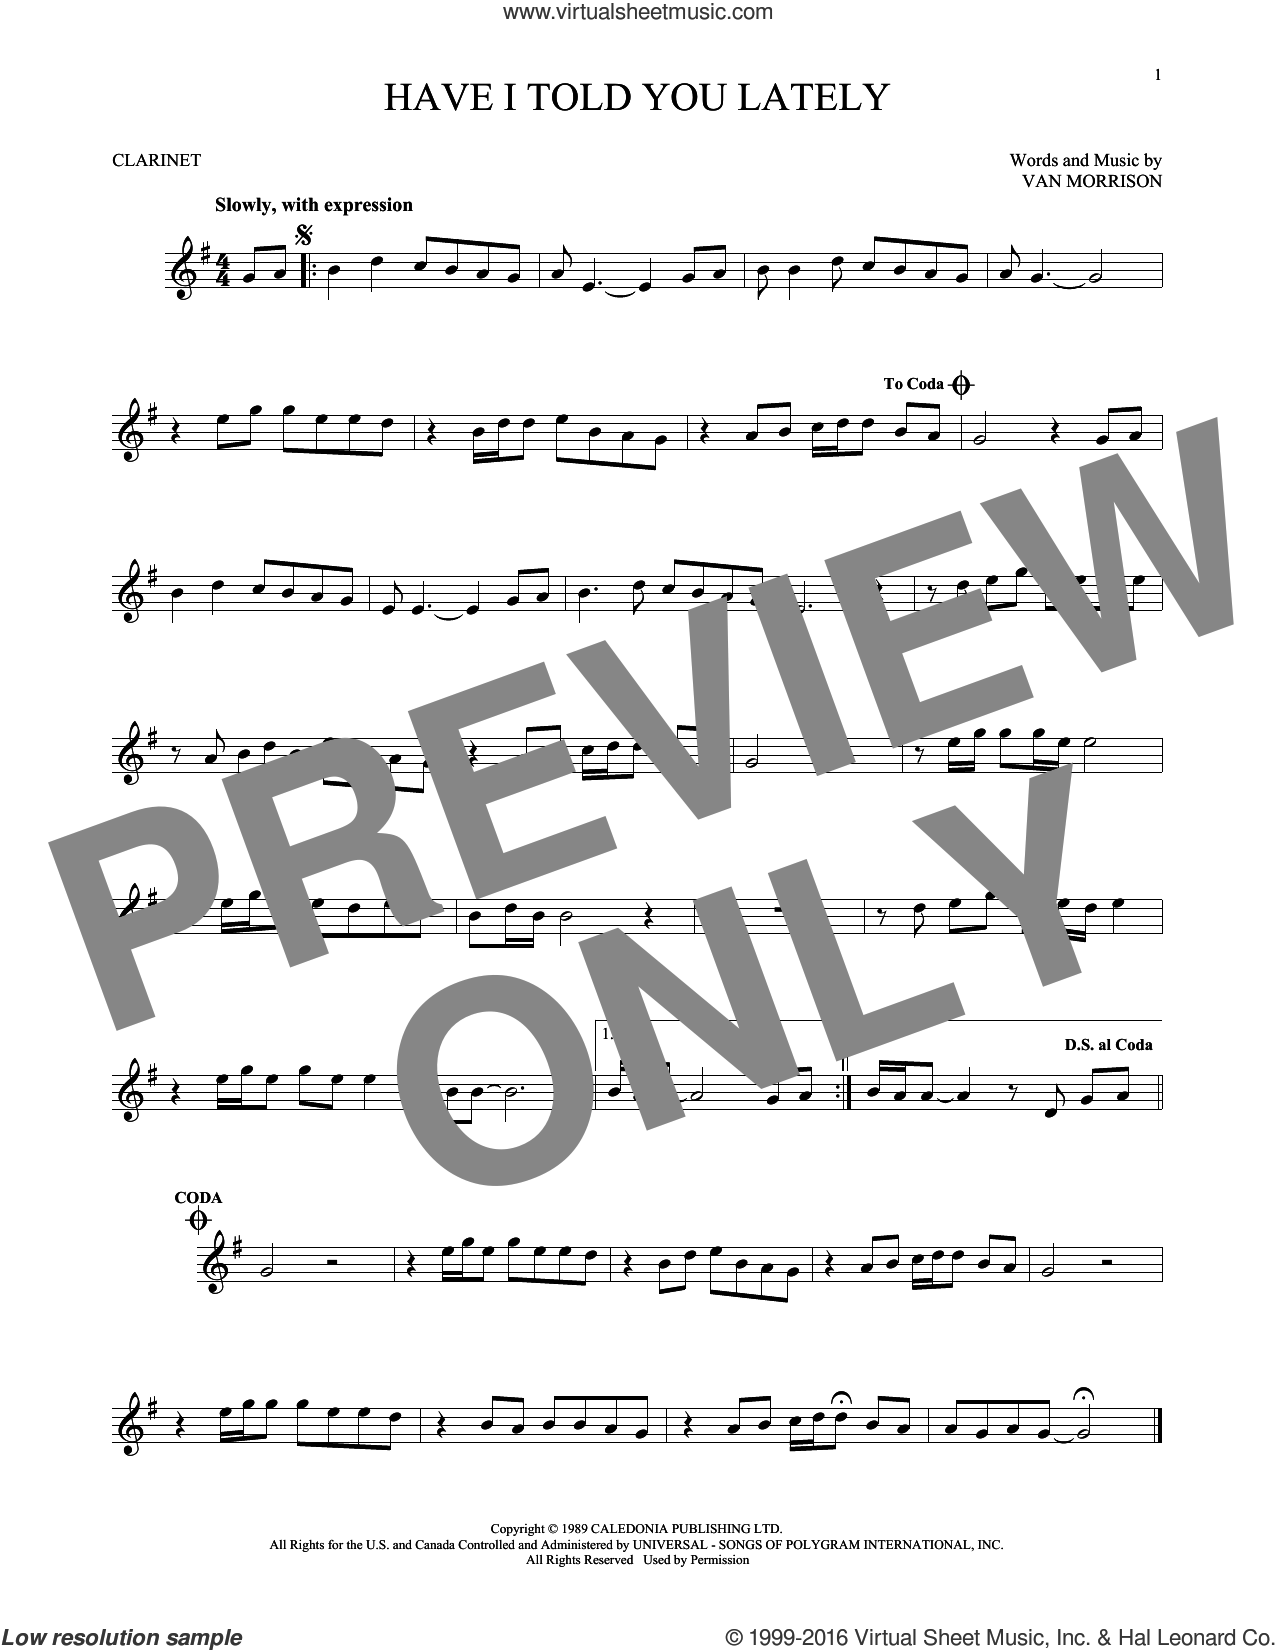 Have I Told You Lately sheet music for clarinet solo by Van Morrison. Score Image Preview.